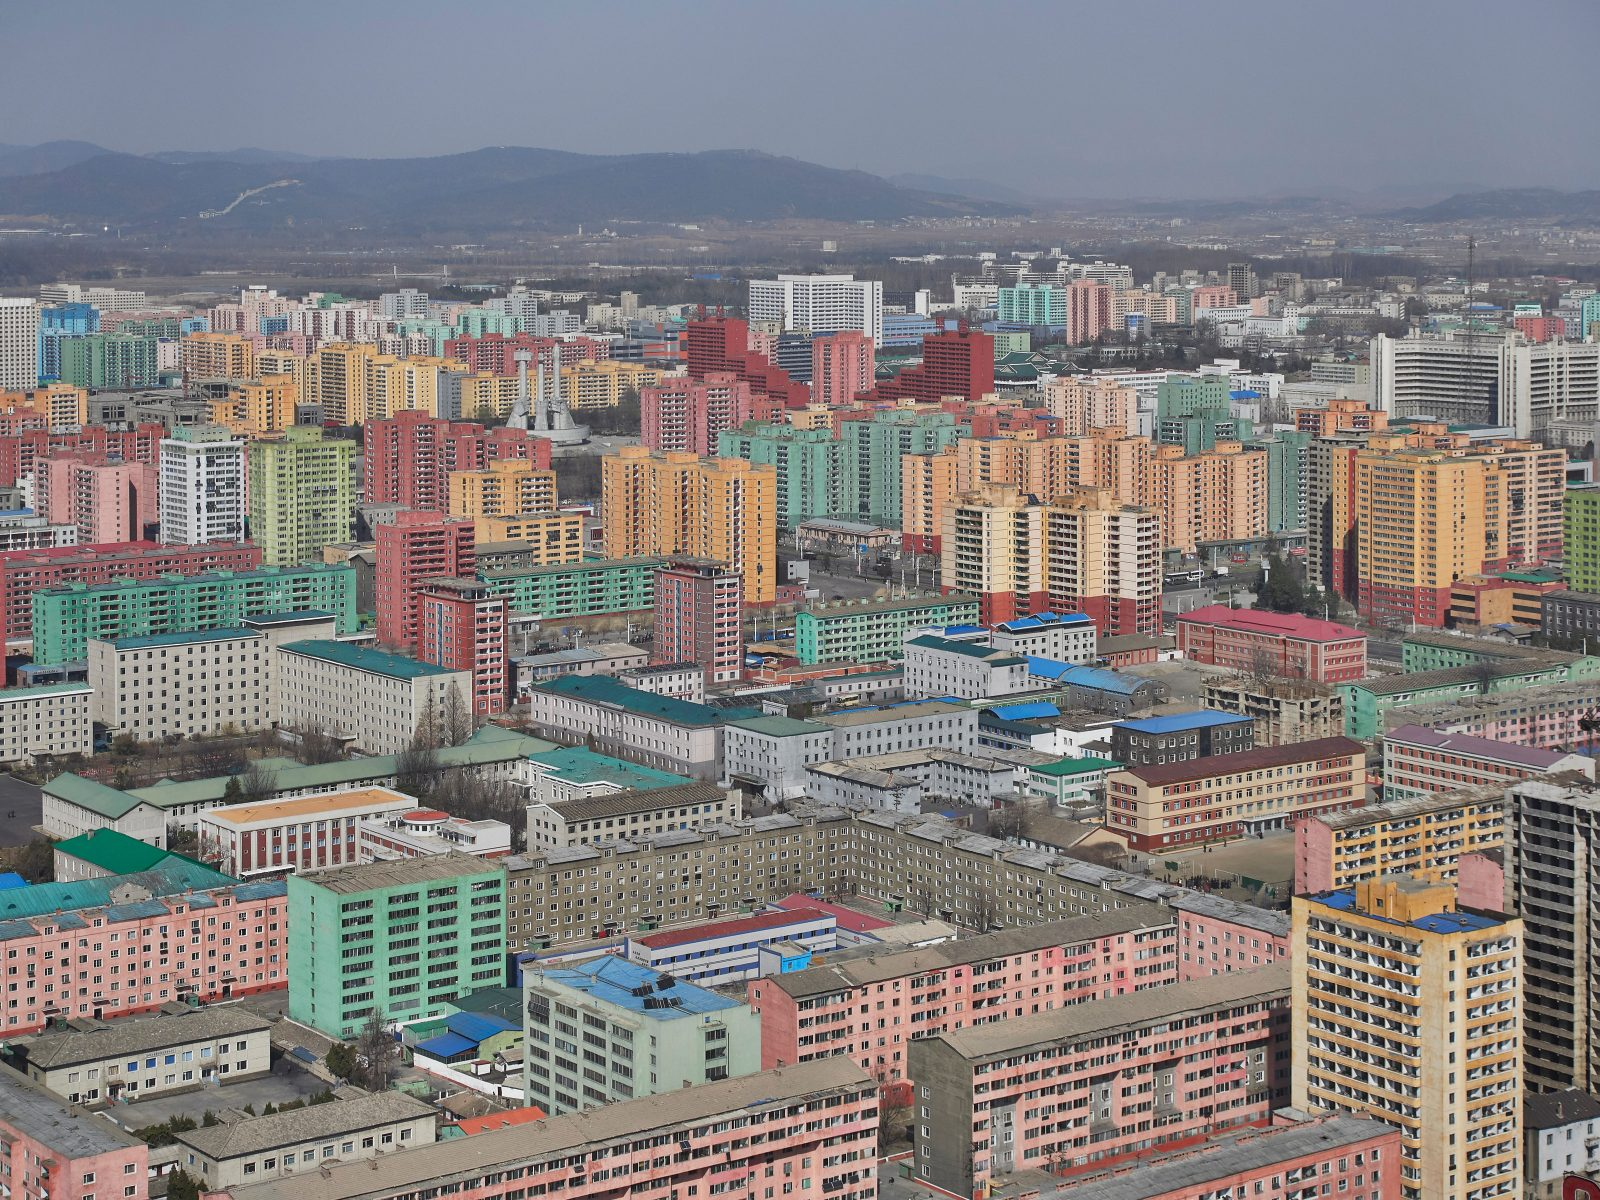 Scenes from the People's Paradise – Pyongyang